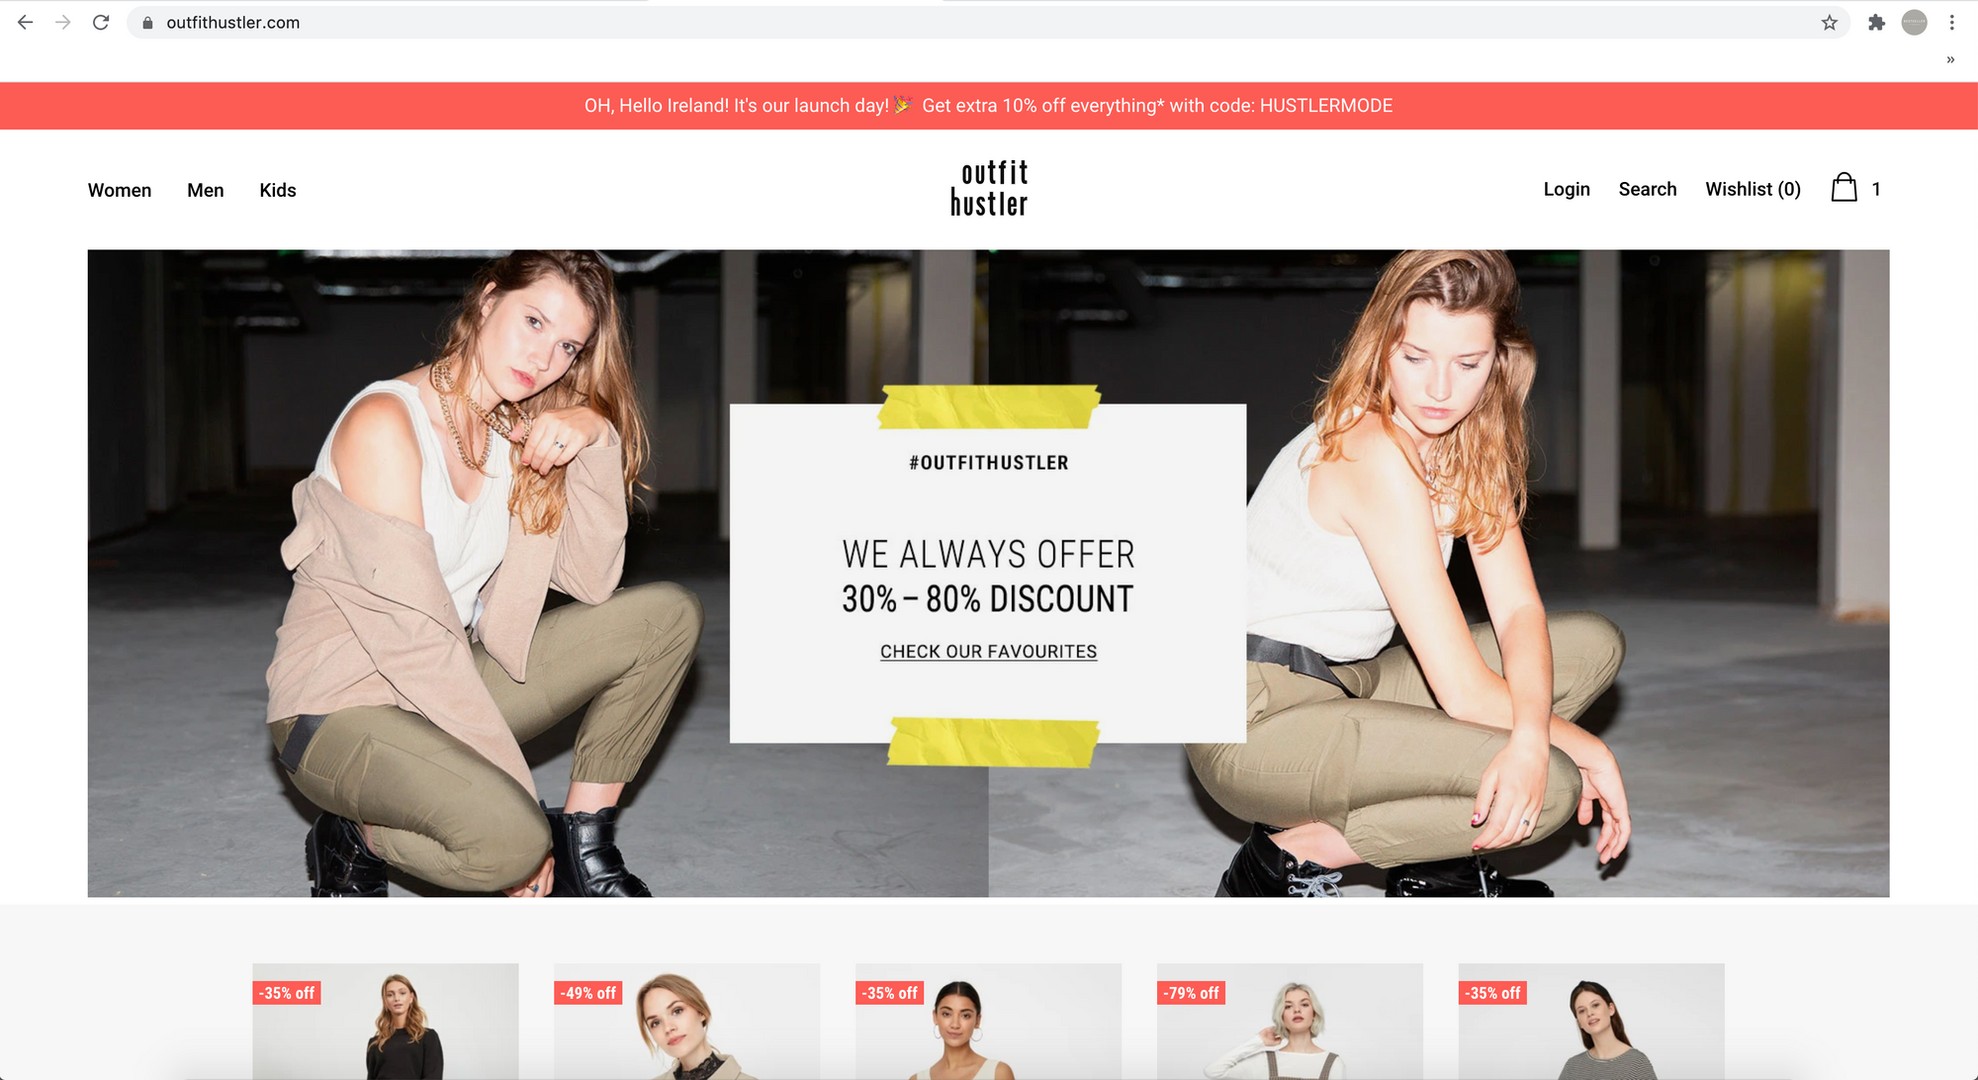 Front page content shot for Outfit Hustler